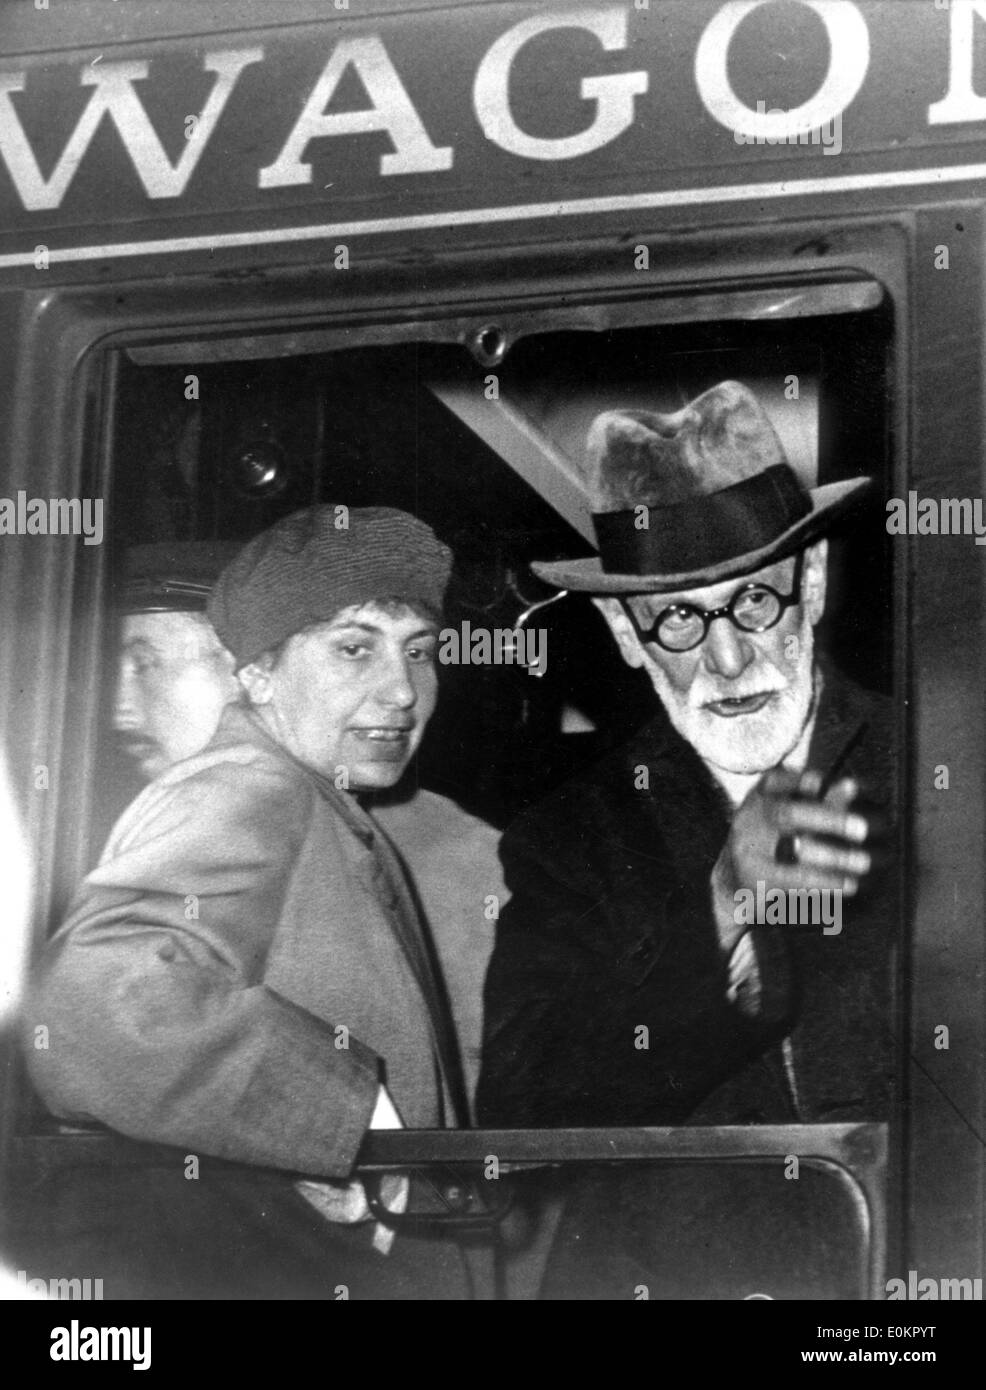 Sigmund Freud with daughter Anna Freud in a wagon - Stock Image